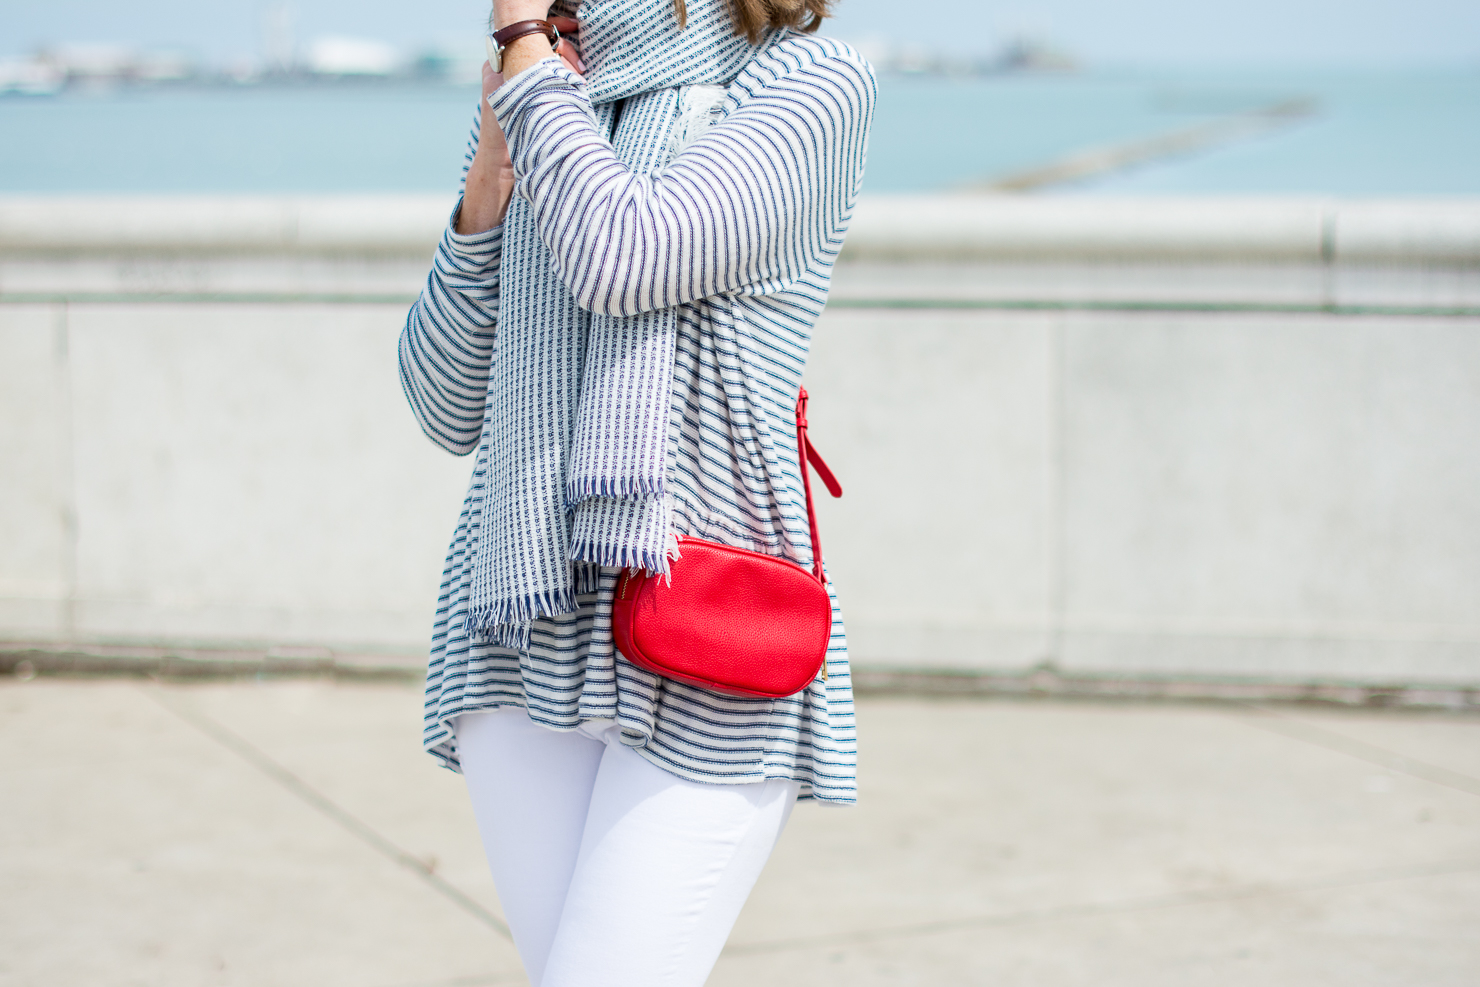 stripes-by-the-sea-chicago-shedd-aquarium-new-look-striped-peplum-sweater-forever-21-navy-striped-scarf-white-skinny-jeans-red-crossbody-gucci-dupe